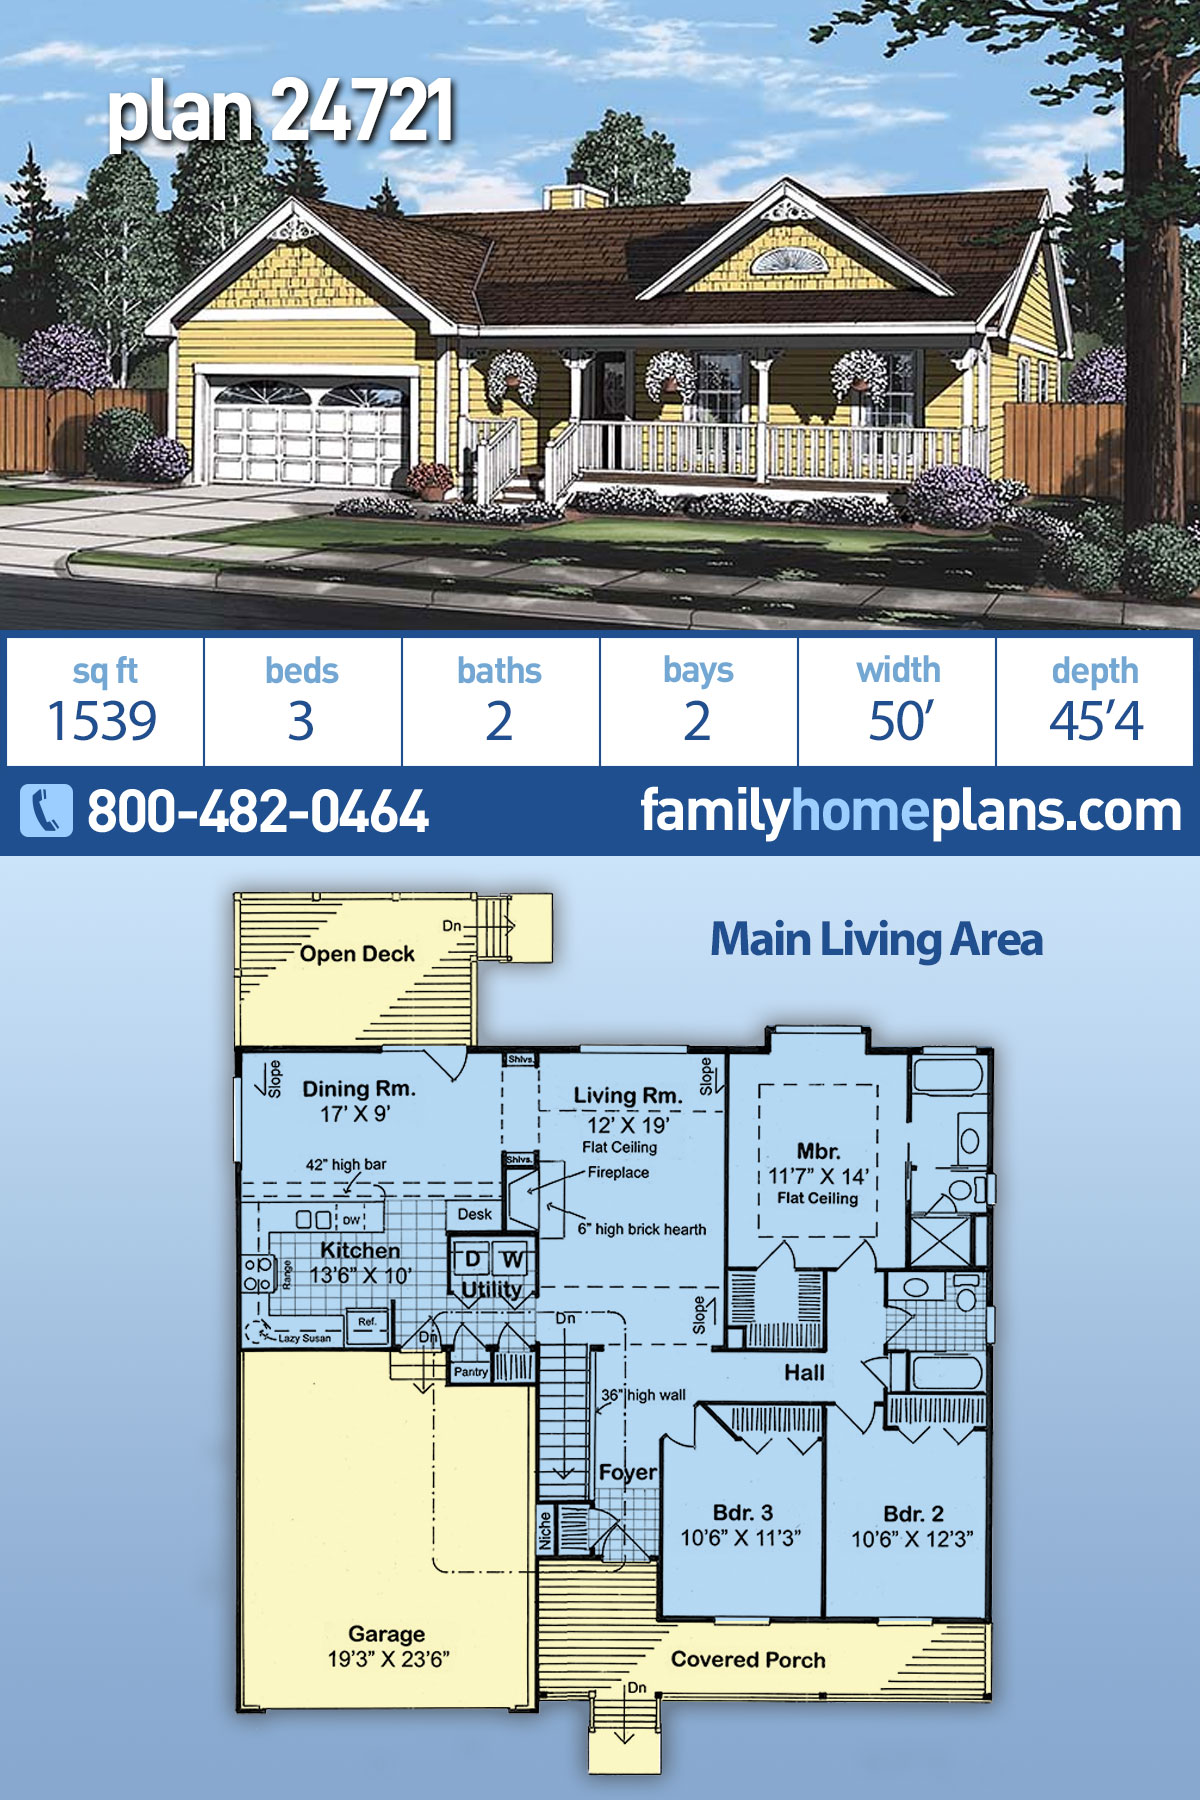 Bungalow , Country , Southern , Traditional House Plan 24721 with 3 Beds, 2 Baths, 2 Car Garage